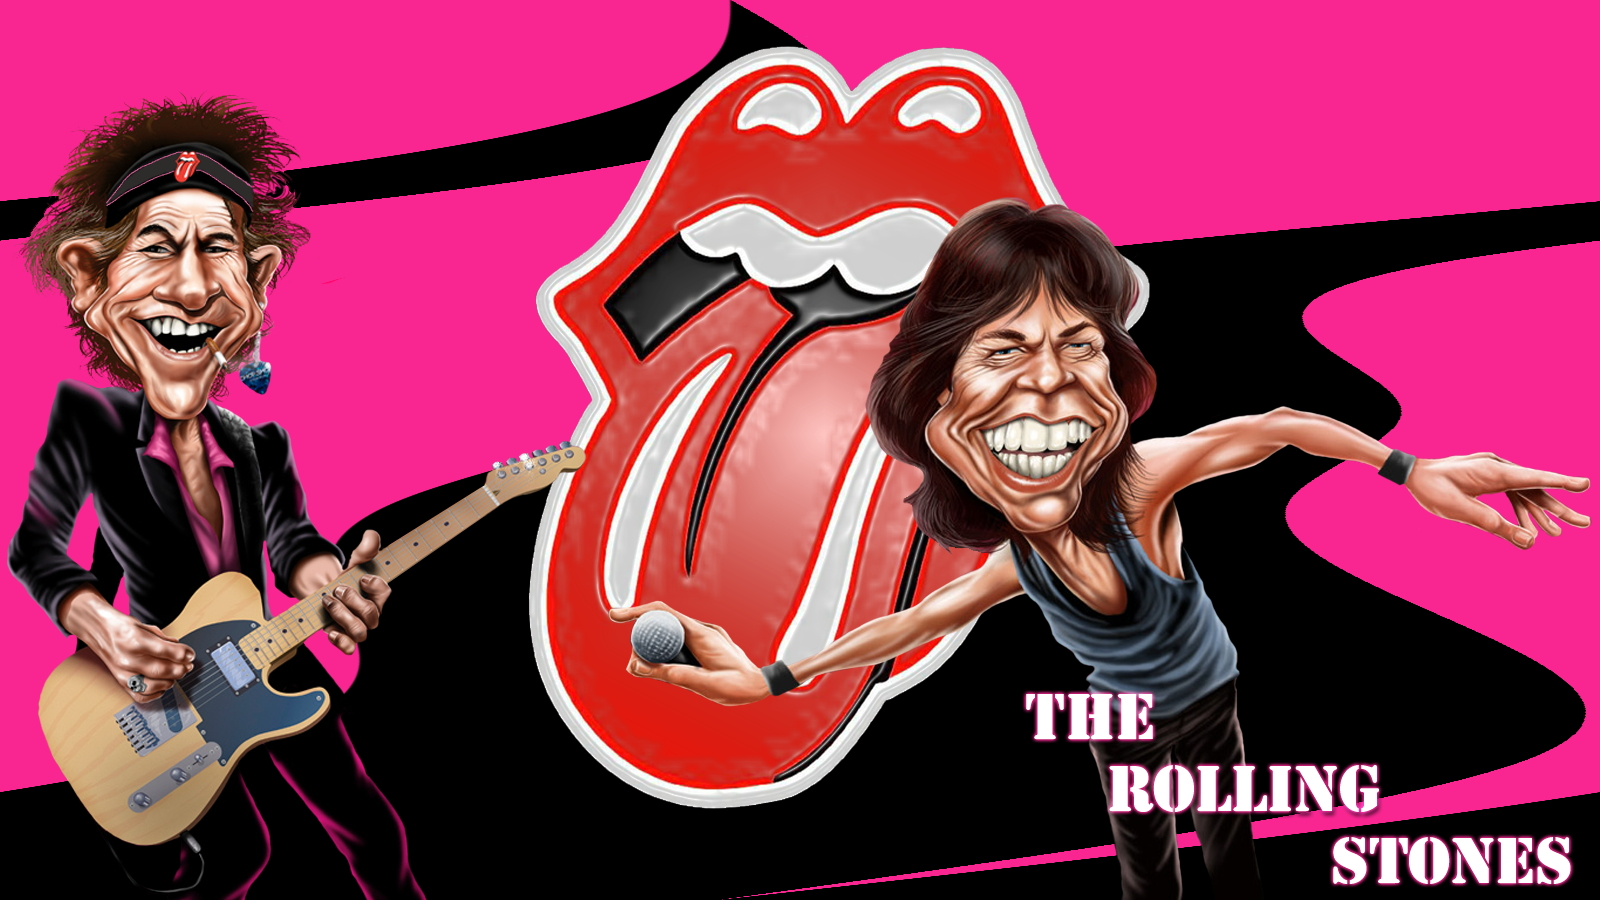 45 The Rolling Stones HD Wallpapers | Backgrounds ...